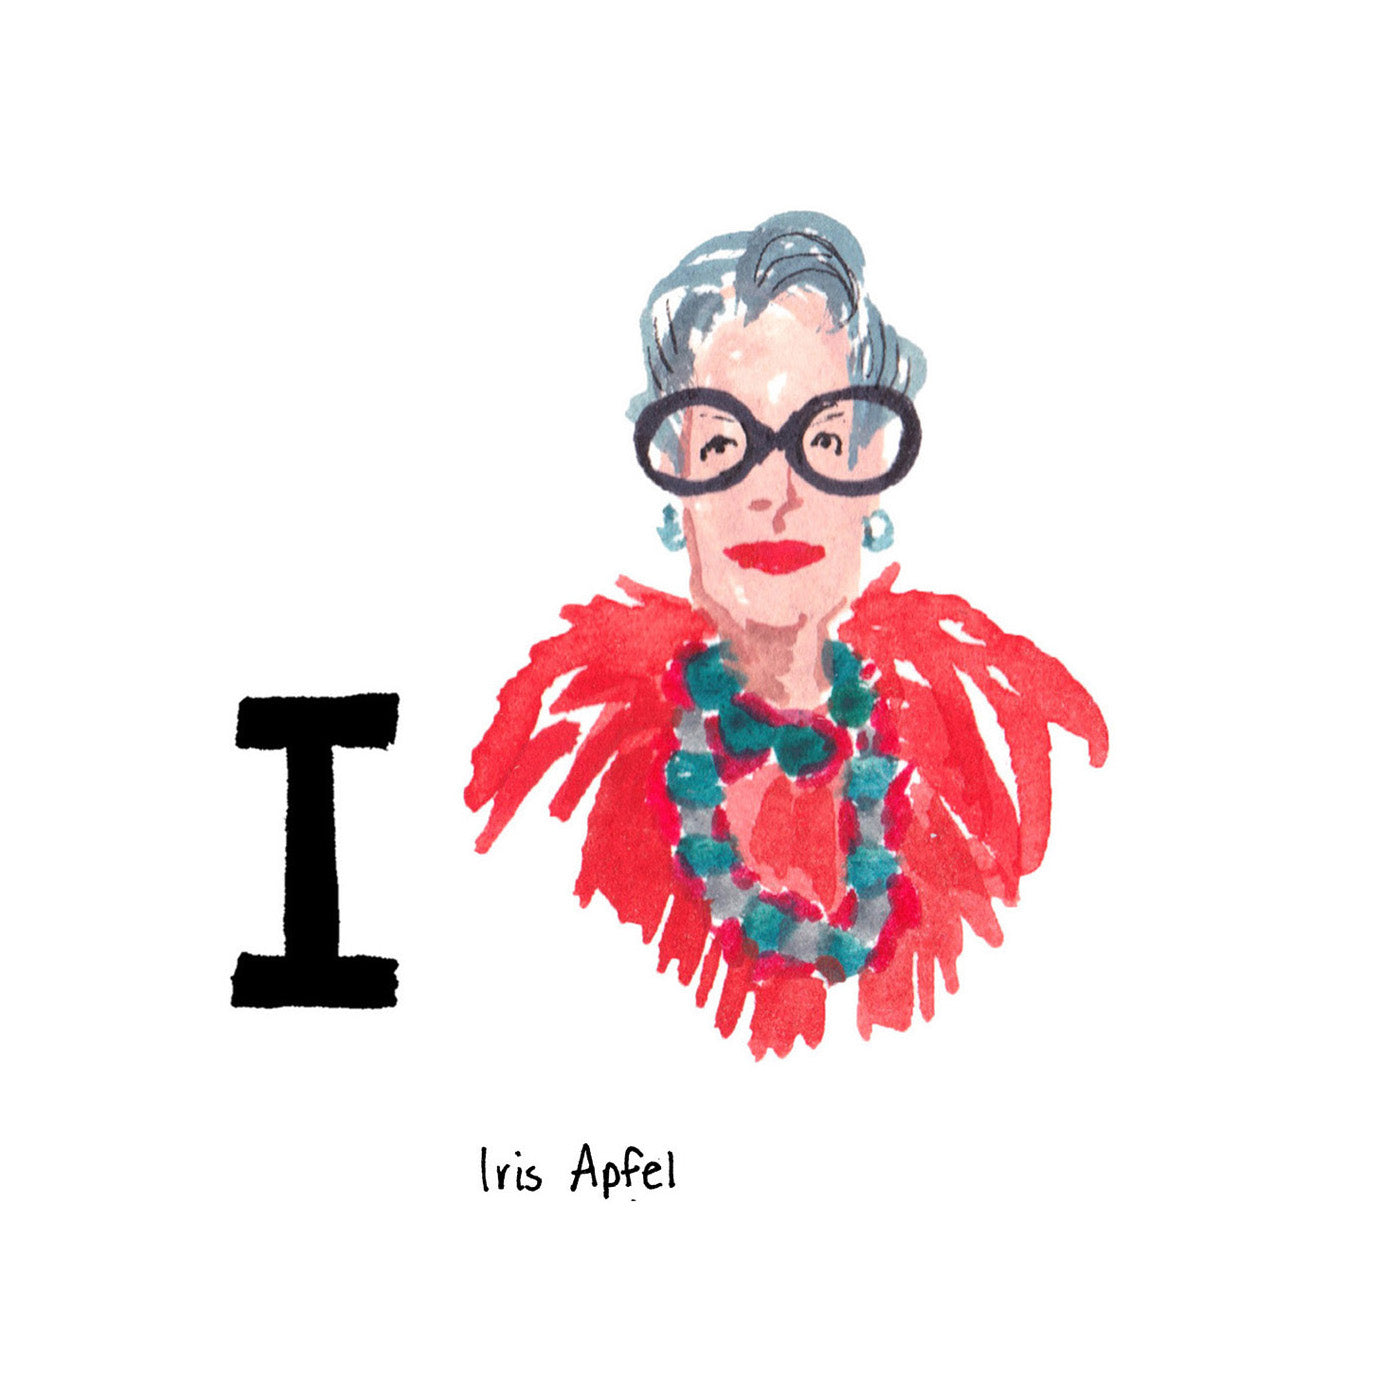 I is for Iris Apfel. Iris Apfel was born in 1921 and grew up in Queens. A collector, interior designer, entrepreneur, and fashion icon she's best known for her oversized glasses, and bold, layered accessories.